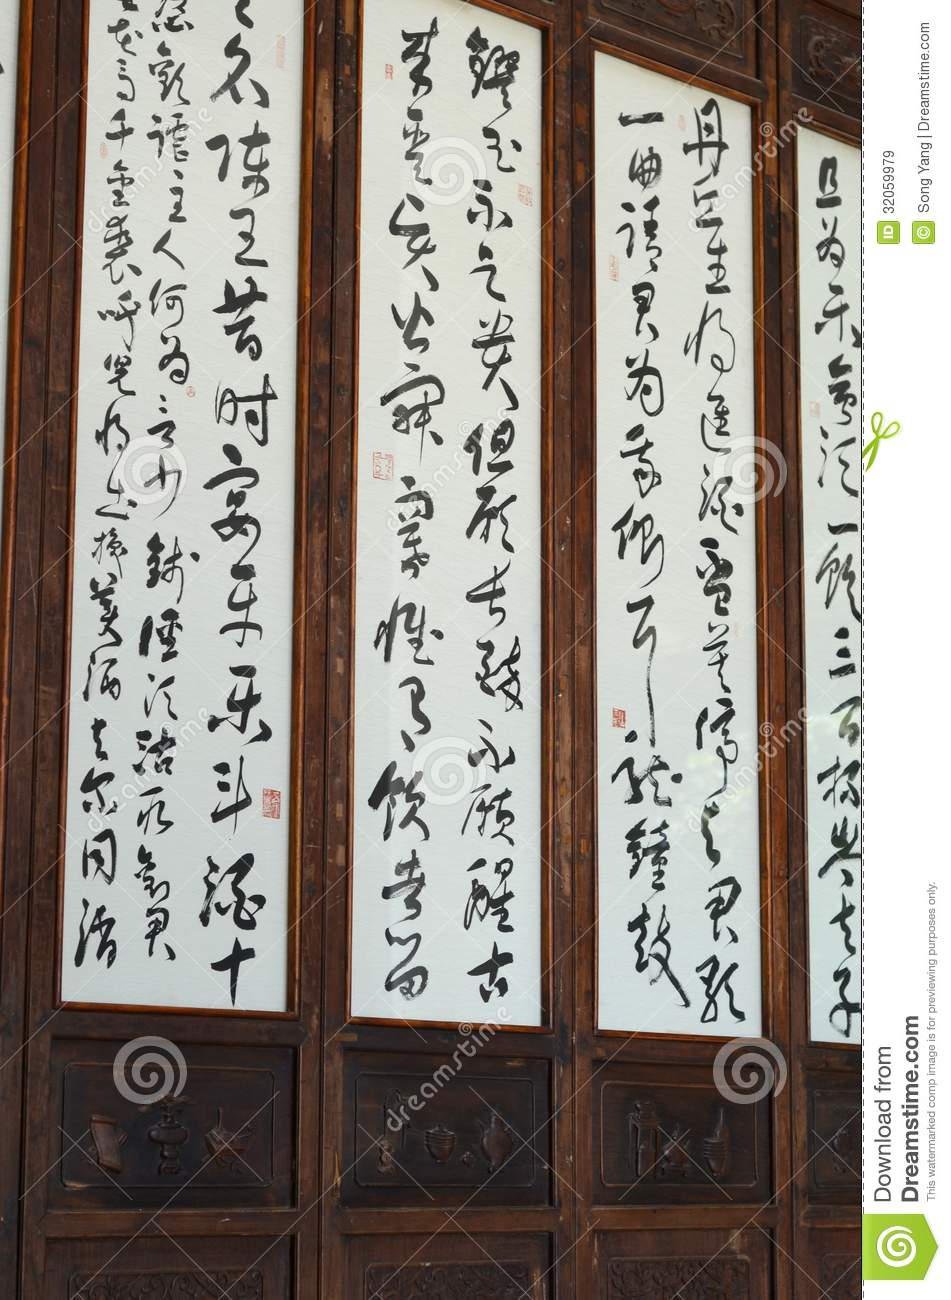 Chinese calligraphy royalty free stock images image Calligraphy ancient china